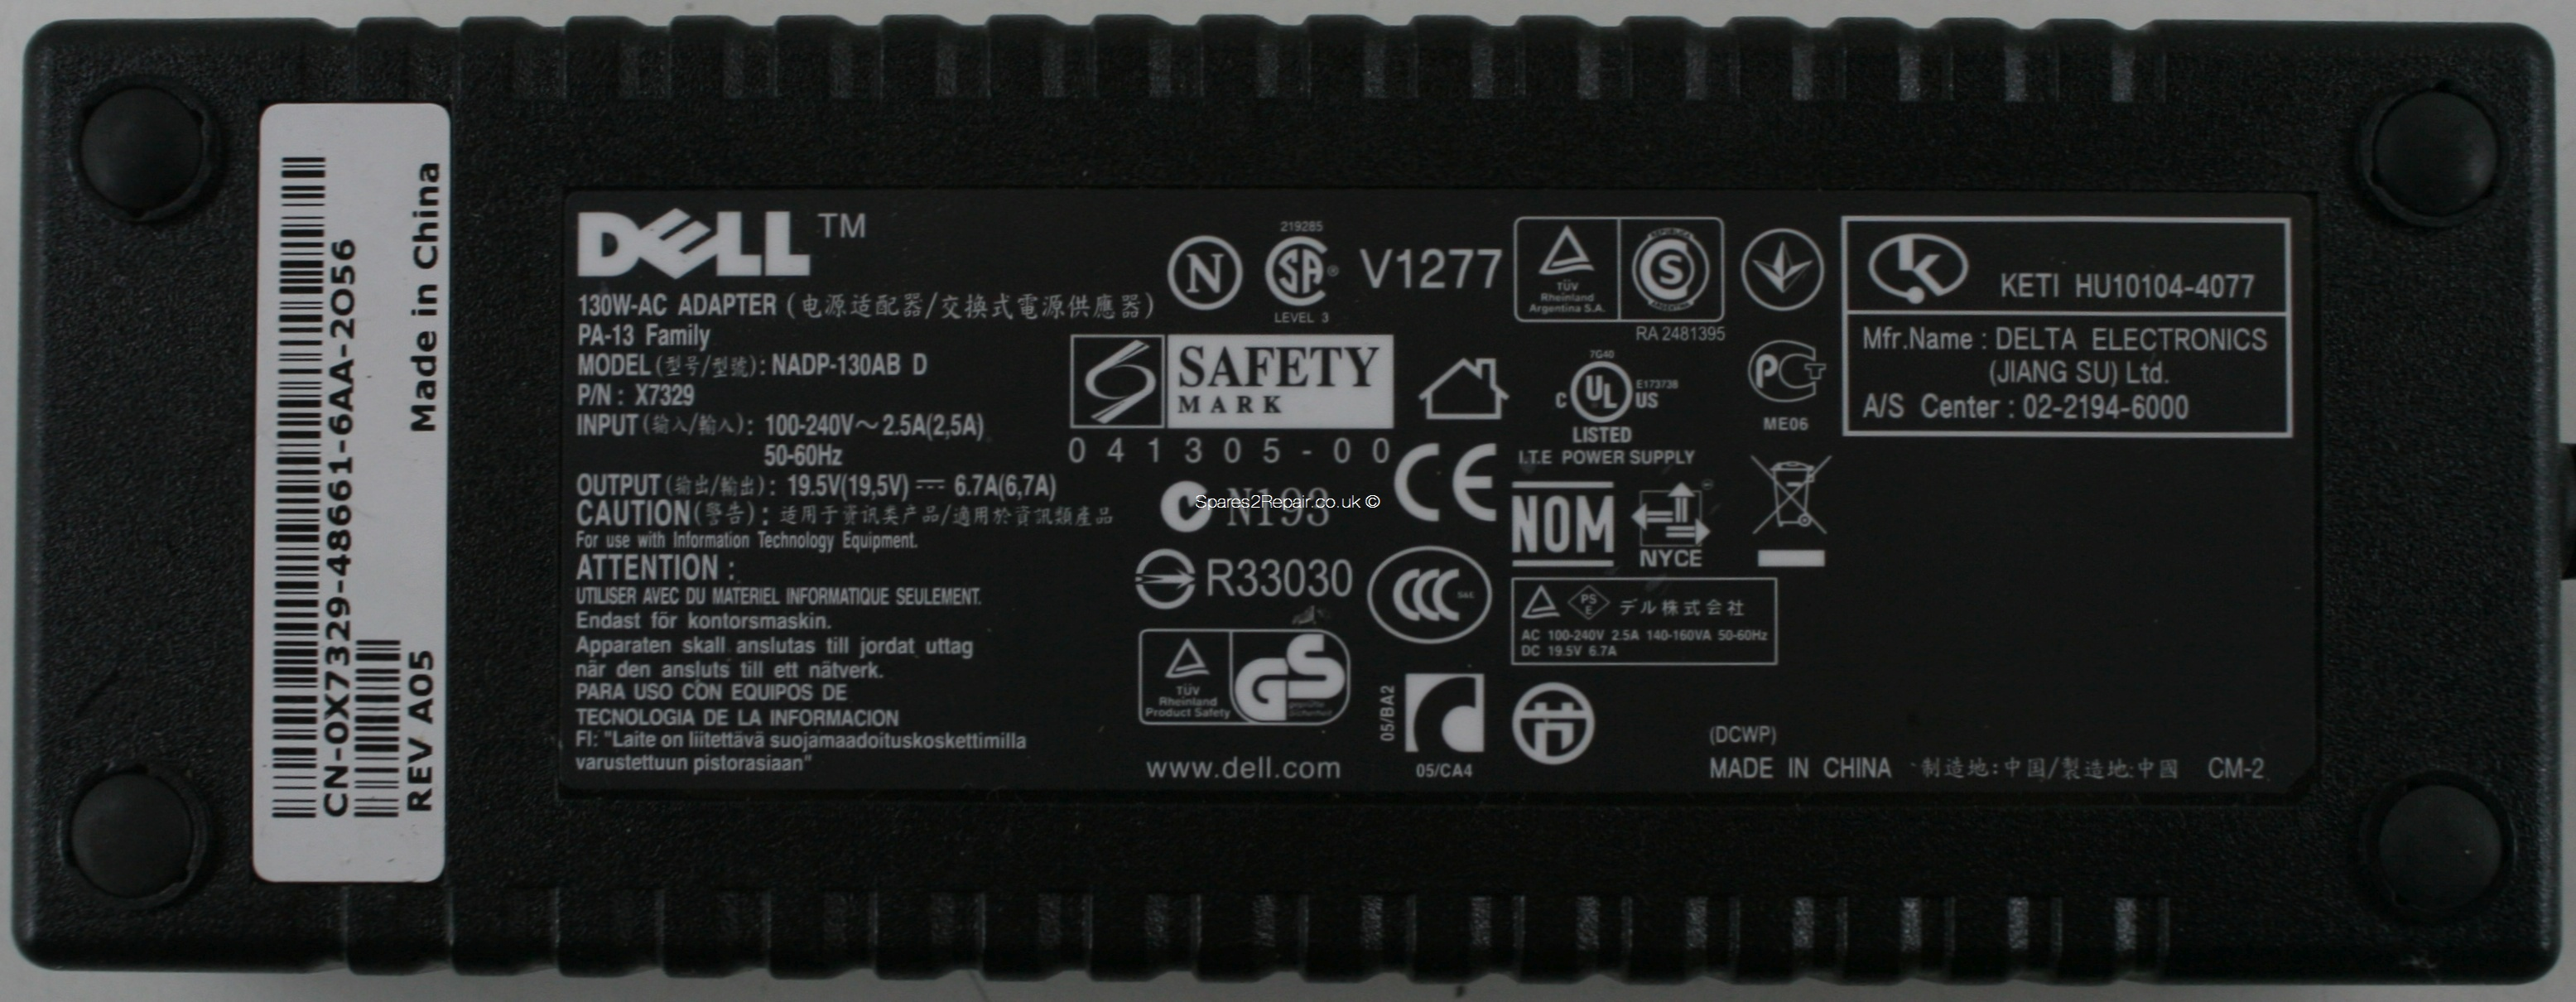 Dell - Charger - X7329 - NADP-130AB D - 19.5-6.7A (Original)